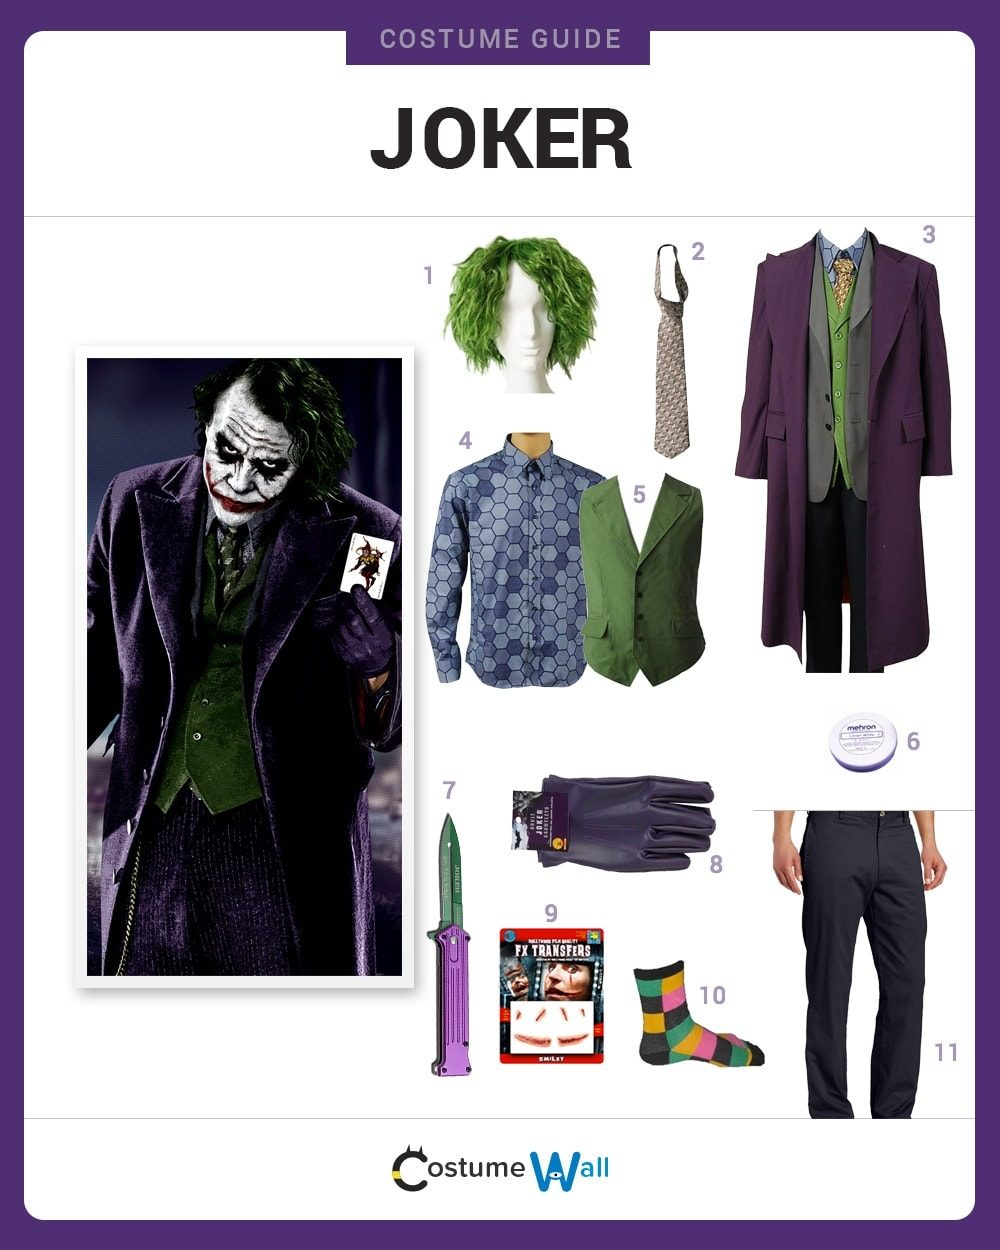 Joker Costume Guide